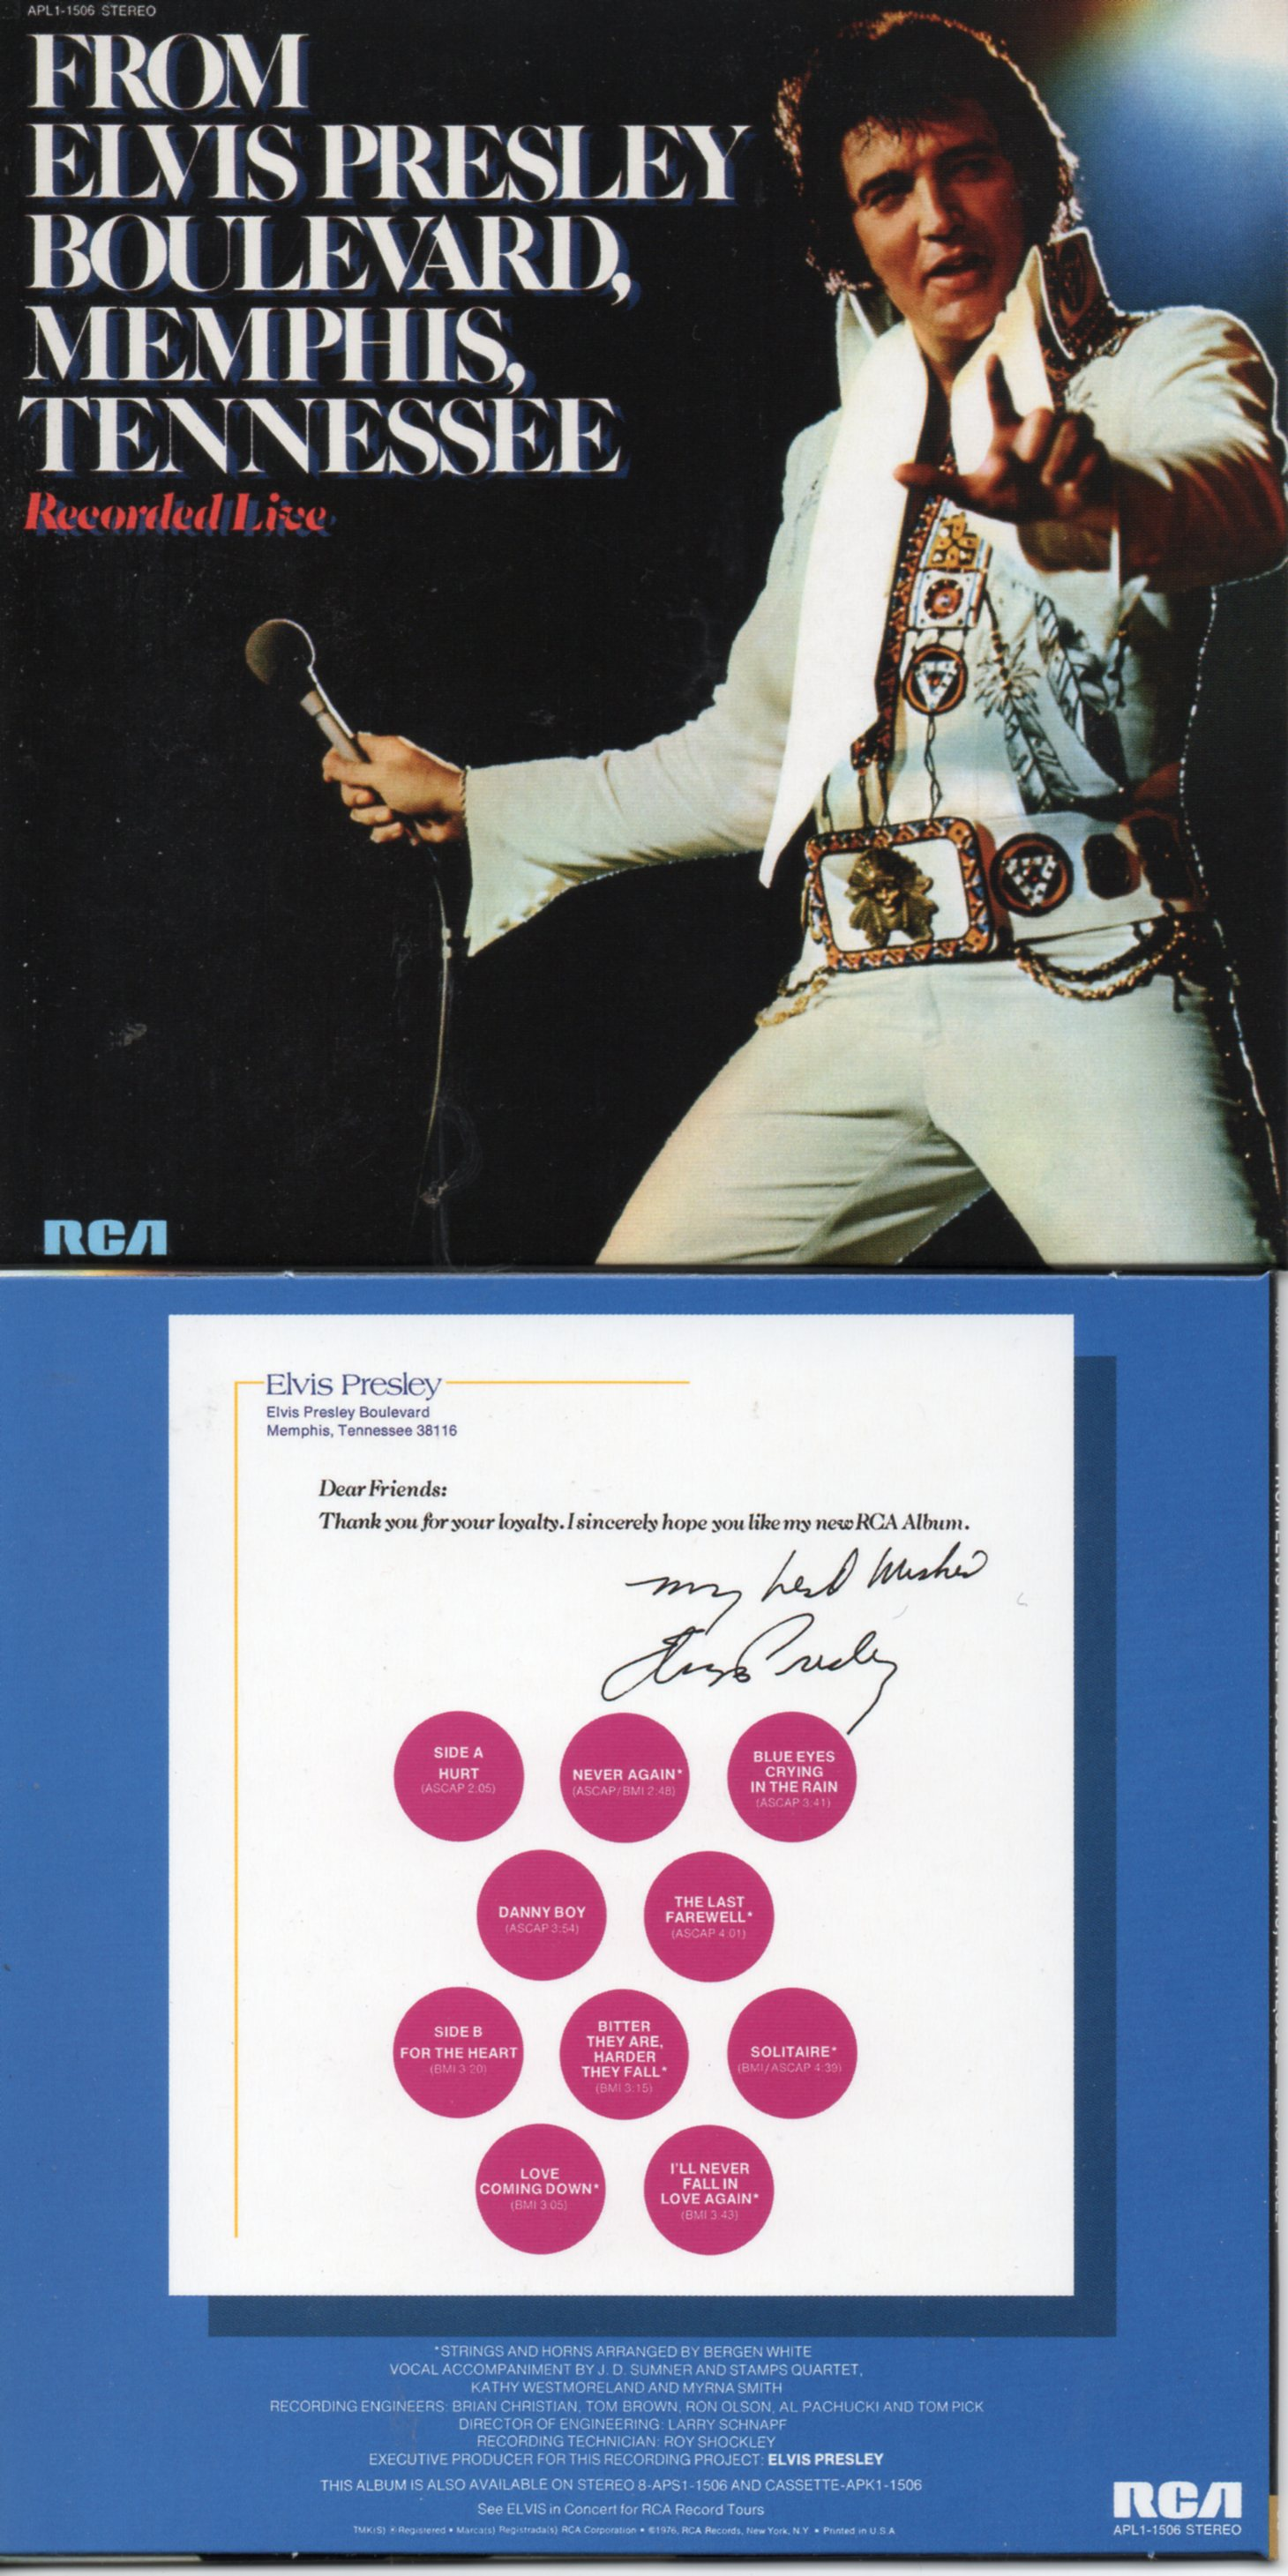 From Elvis Presley Boulevard, Memphis, Tennessee (1976 - Mini Lp Replica - 10-track Card Sleeve) - Elvis PRESLEY